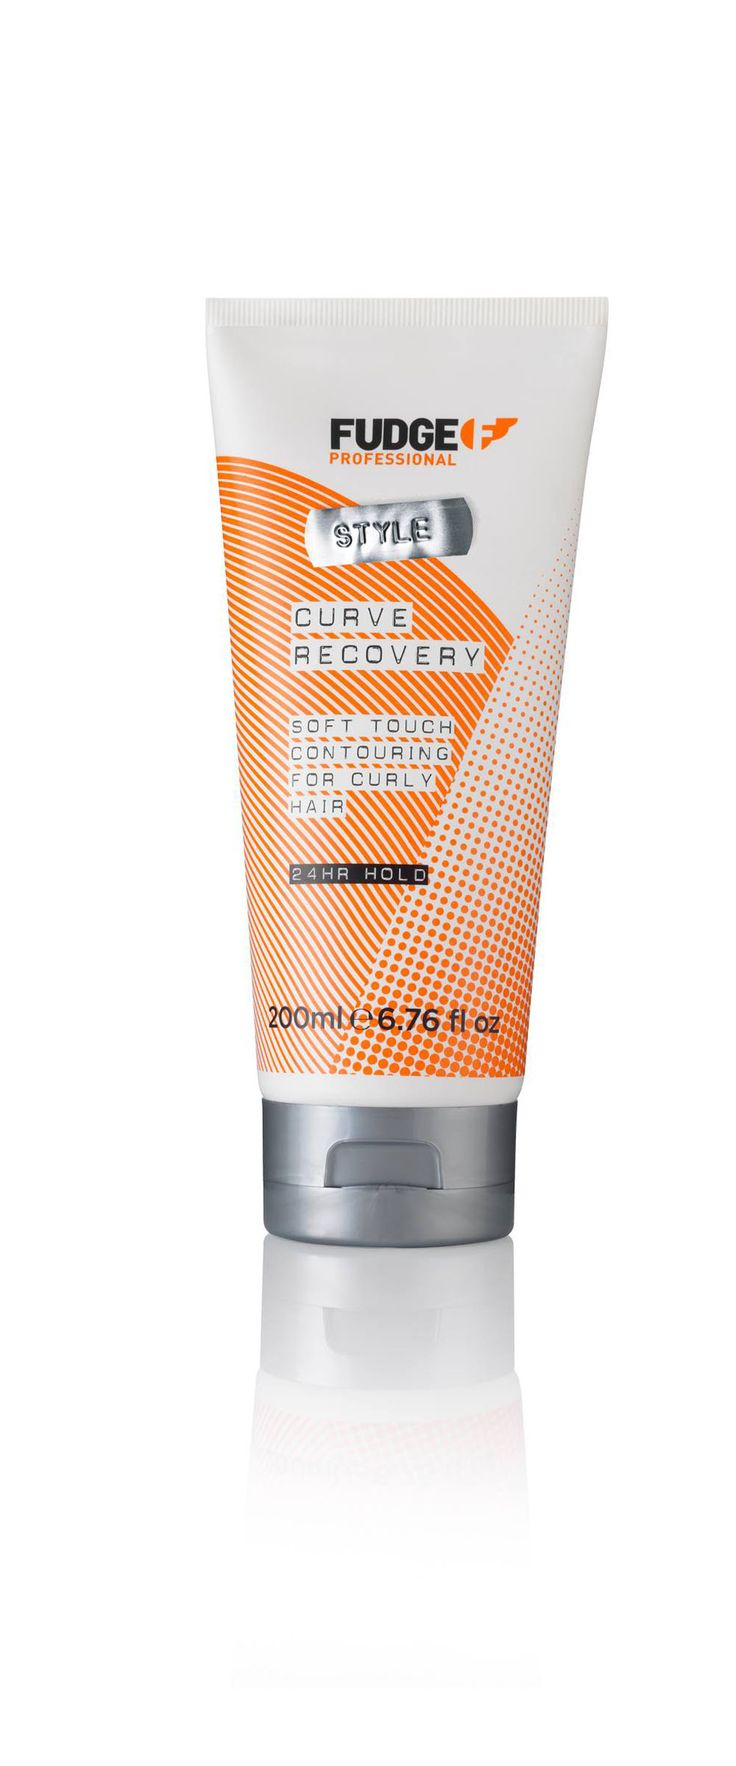 Fudge Professional Curve Recovery 200ml.